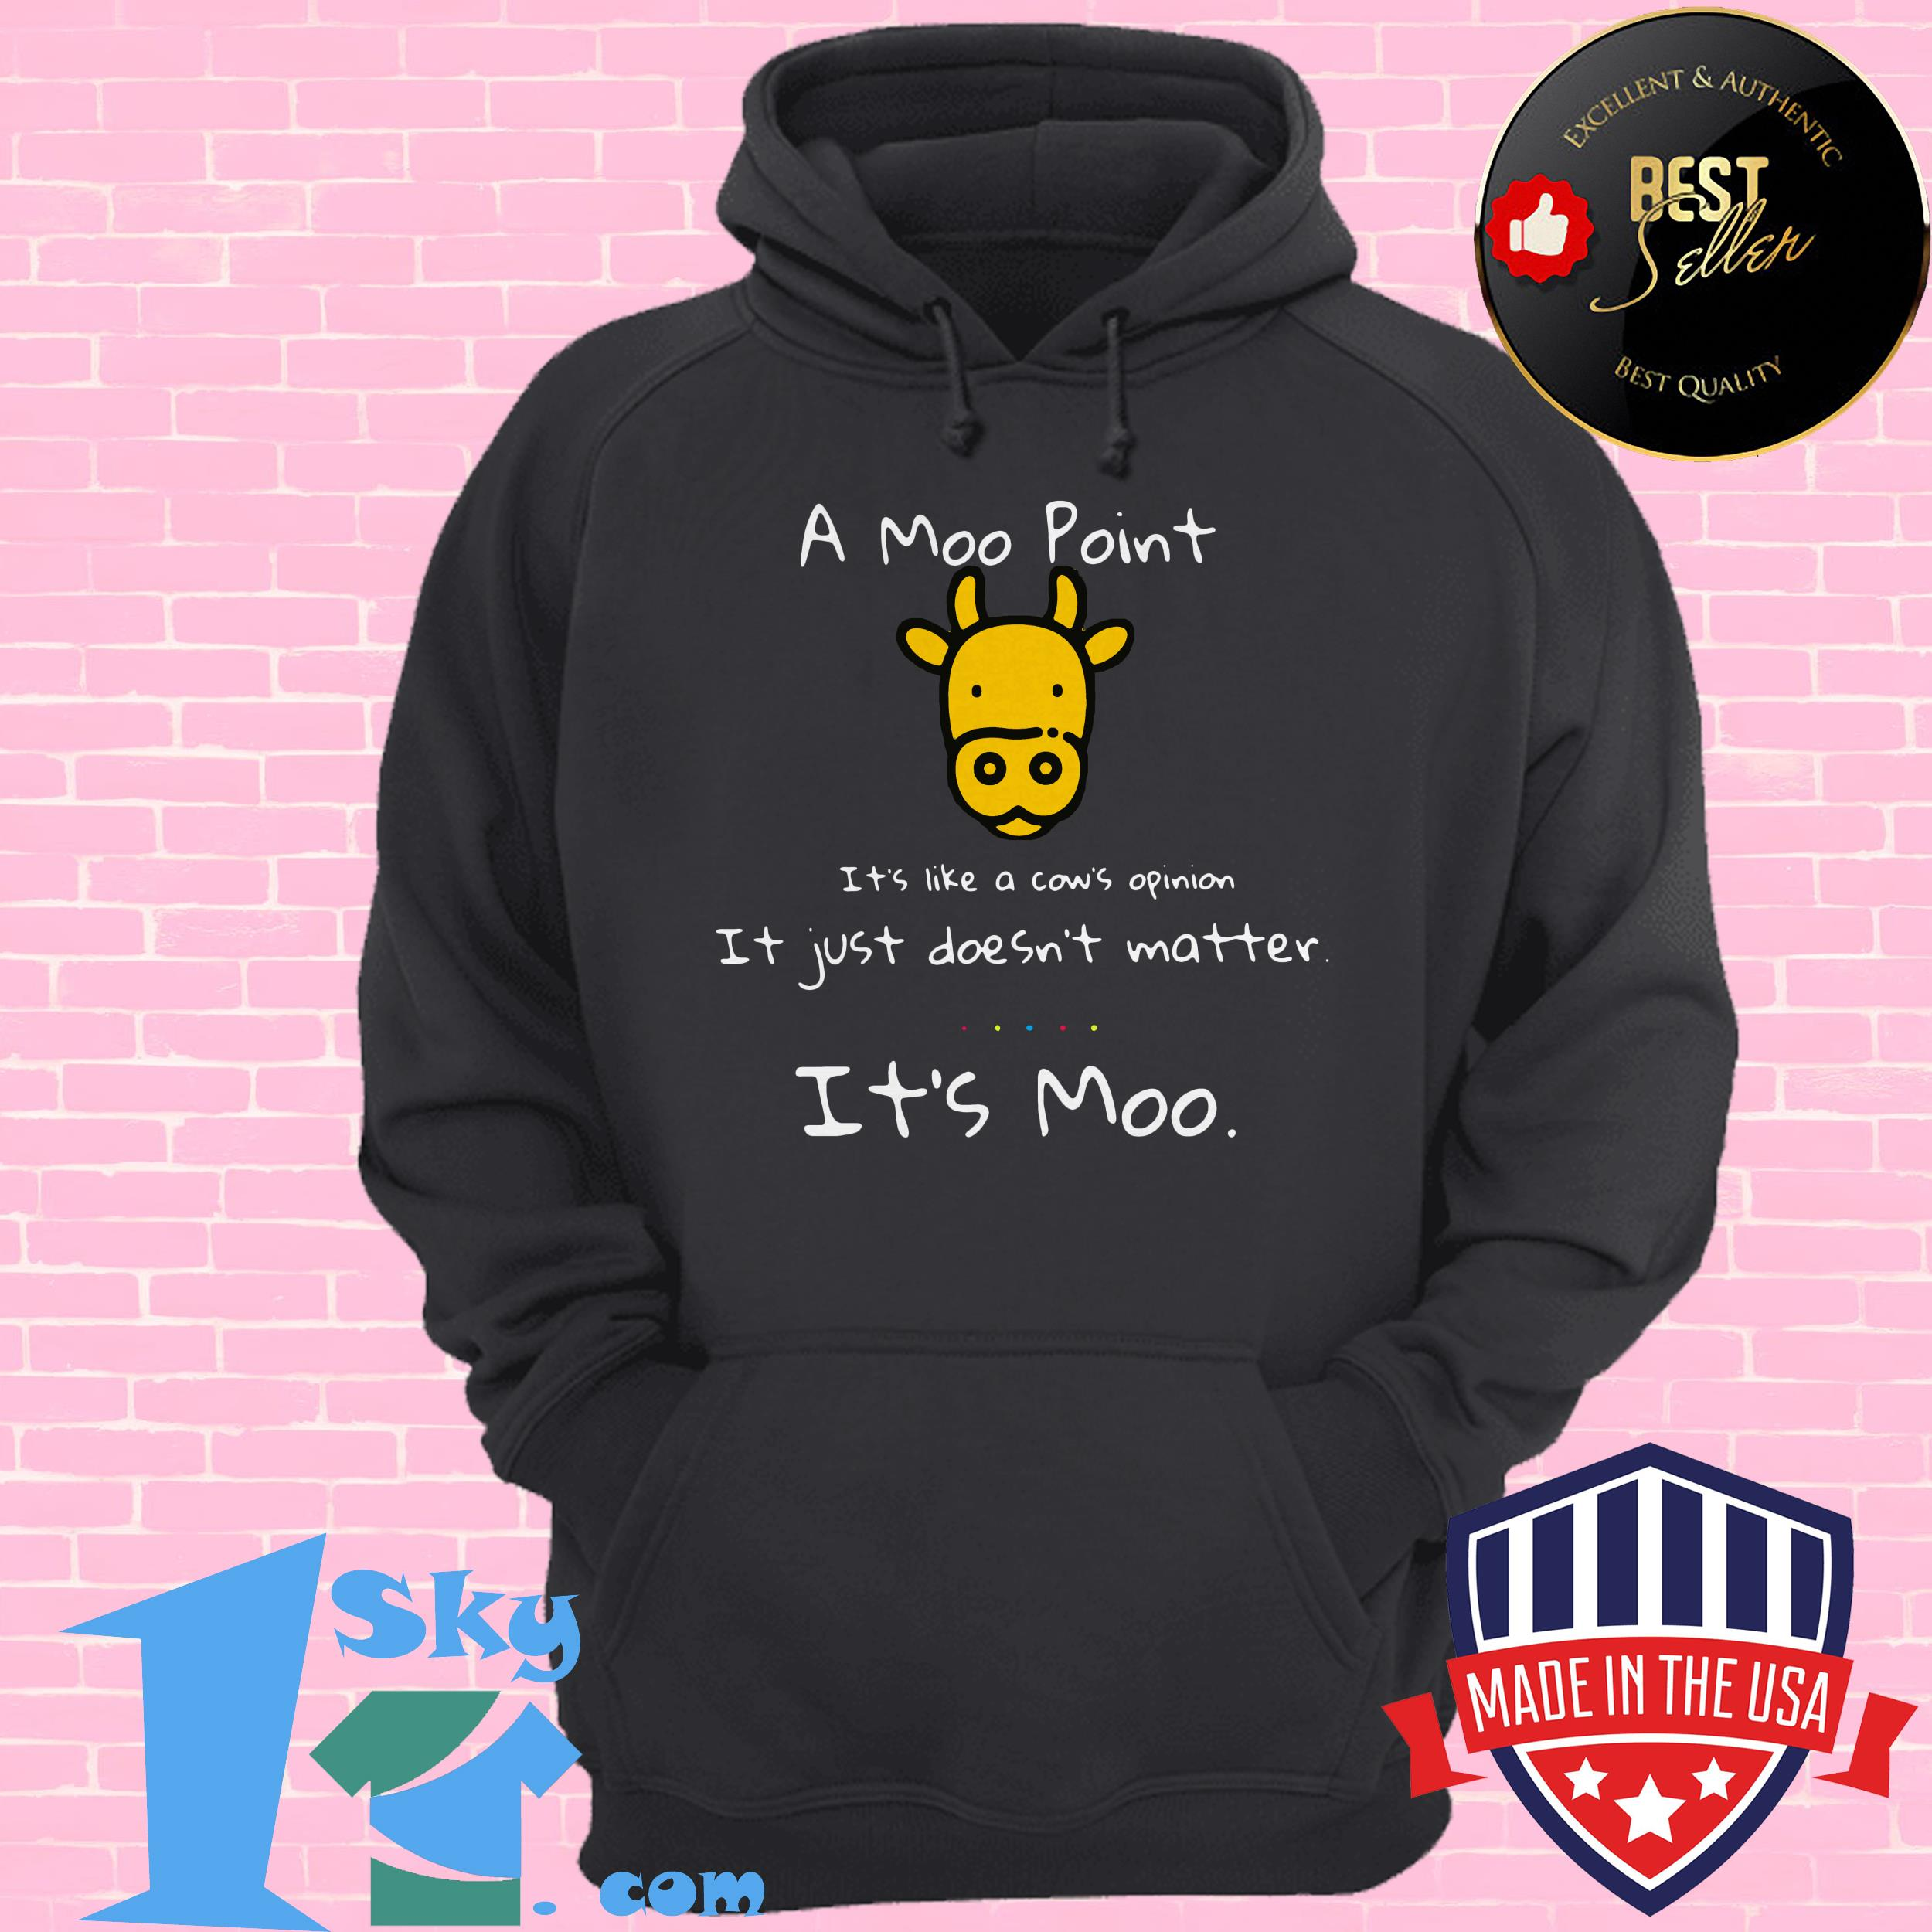 a moo point its like a cows opinion it just doesnt matter its moo hoodie - A moo point its like a cows opinion it just doesn't matter it's moo shirt